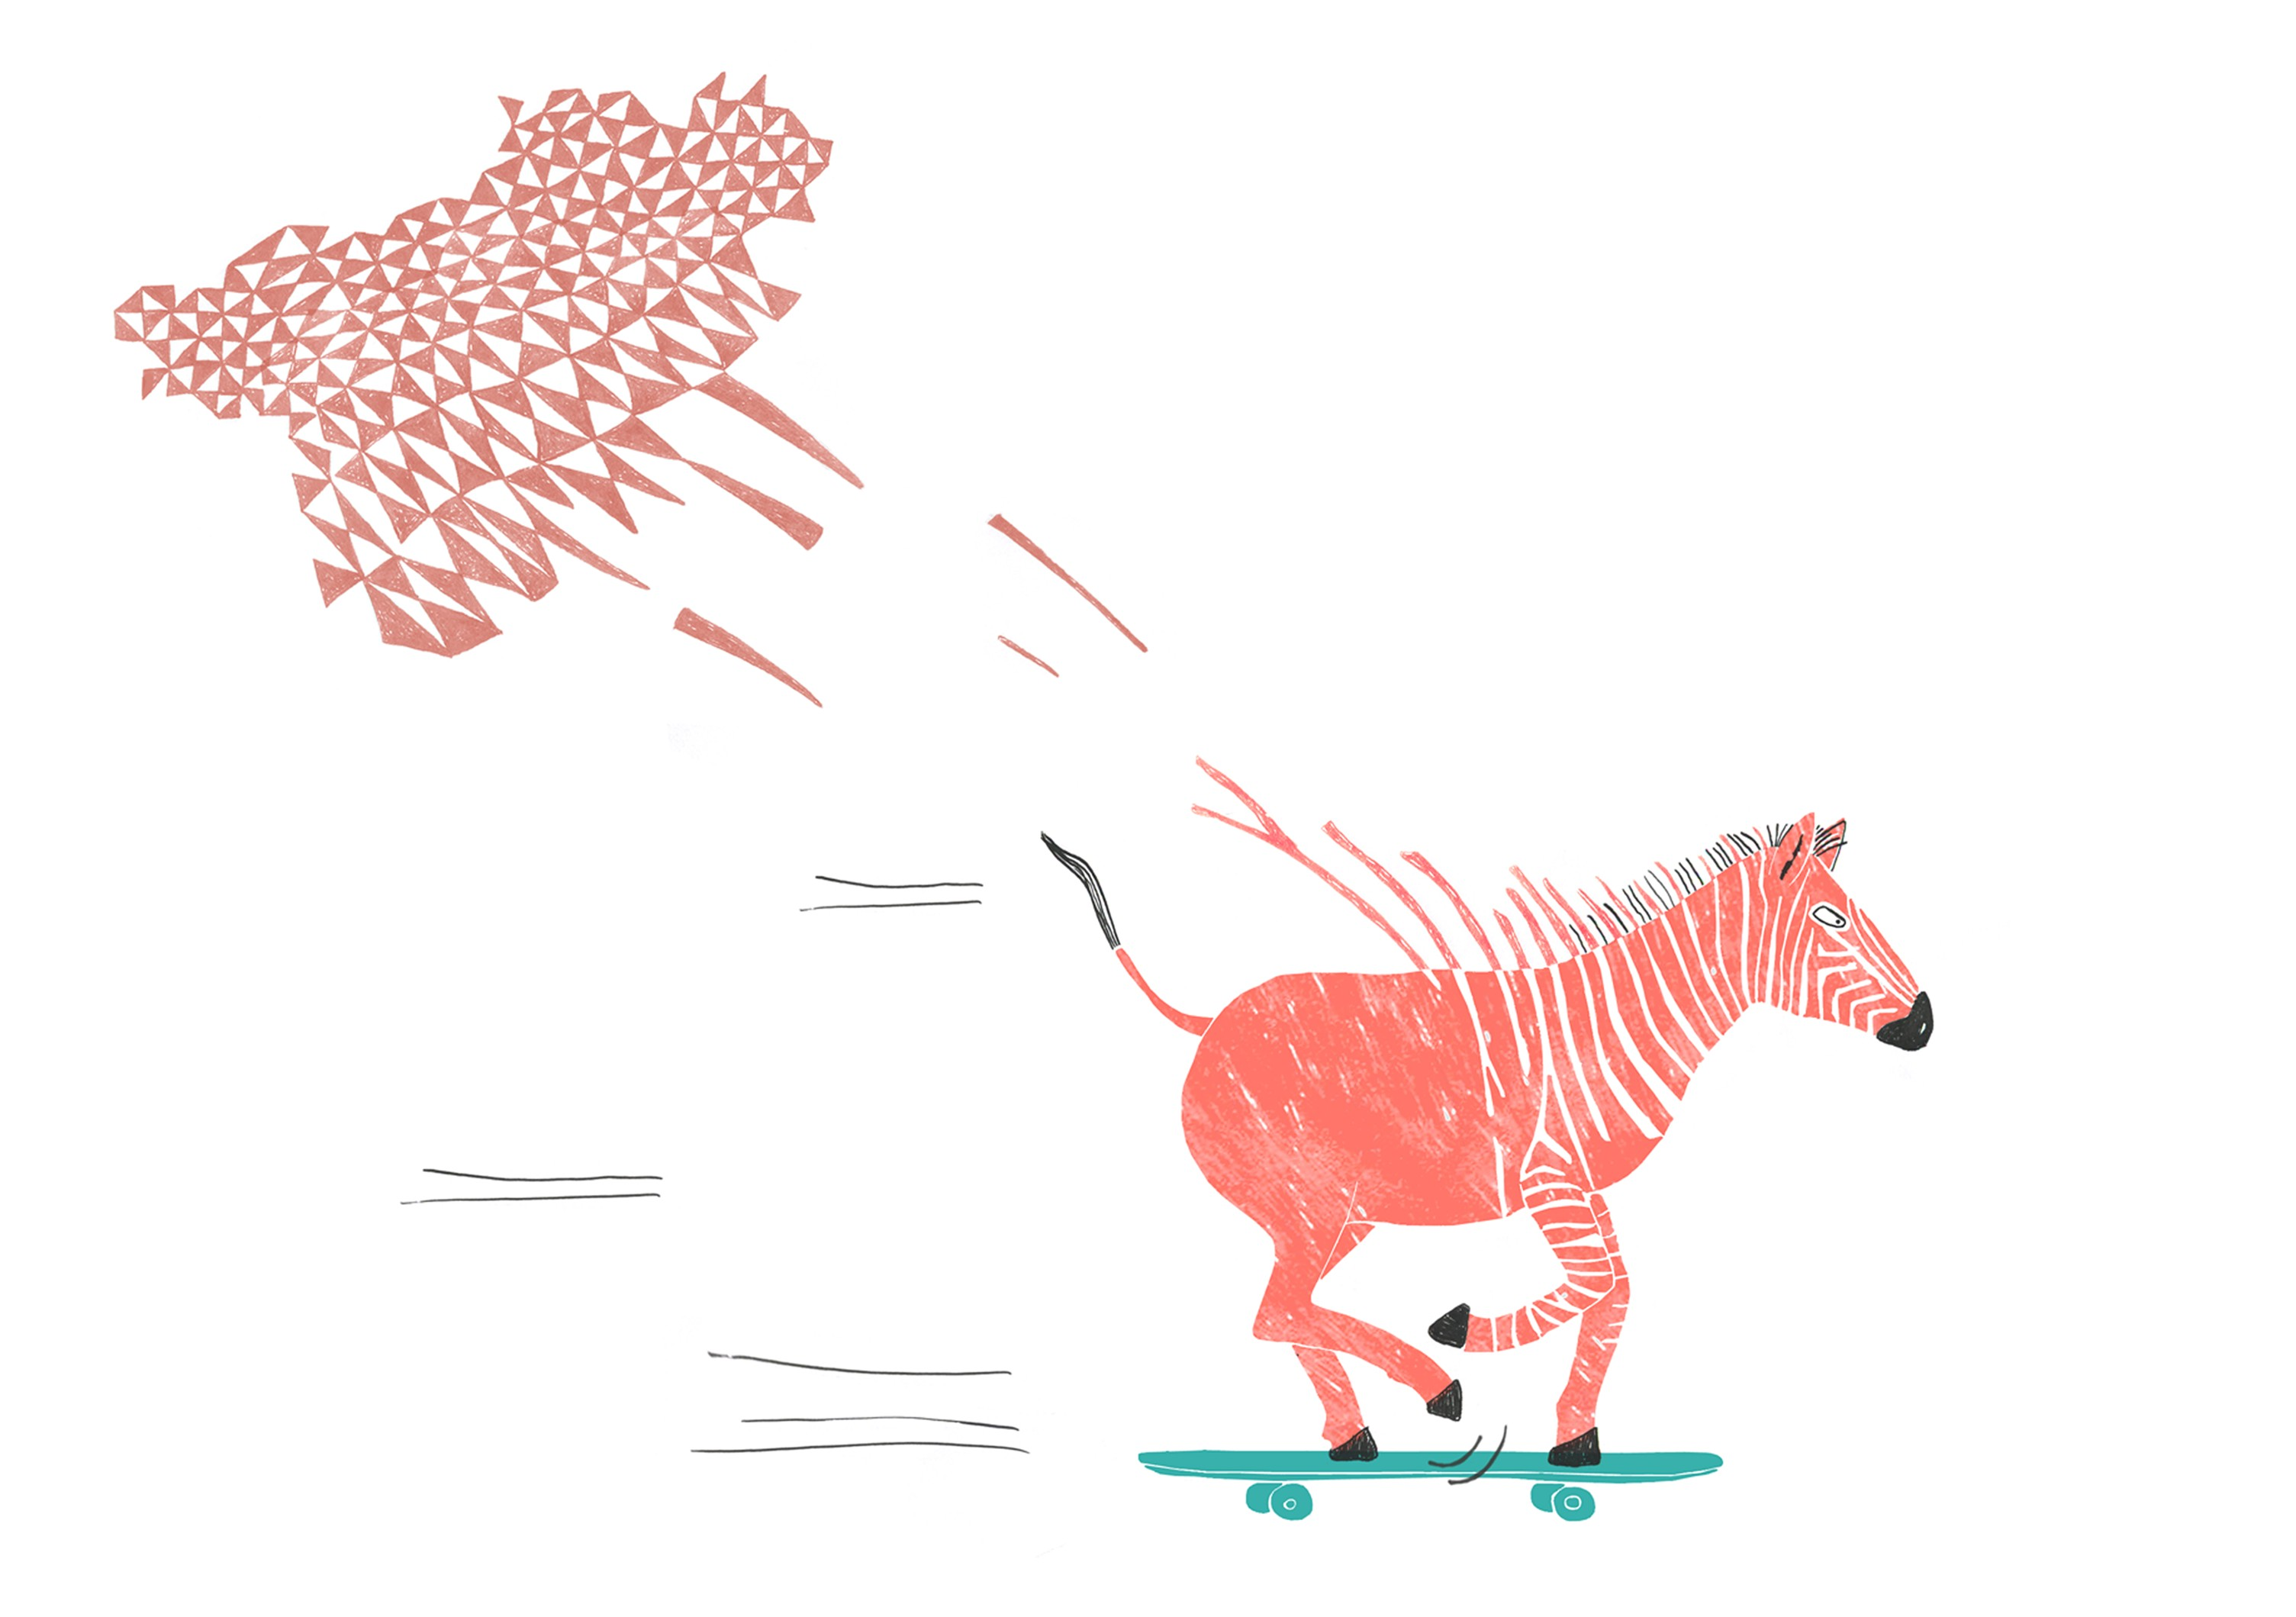 Zebra on skateboard for Oh Marie Magazine issue Dazzled painting by illustrator Ellen Vesters